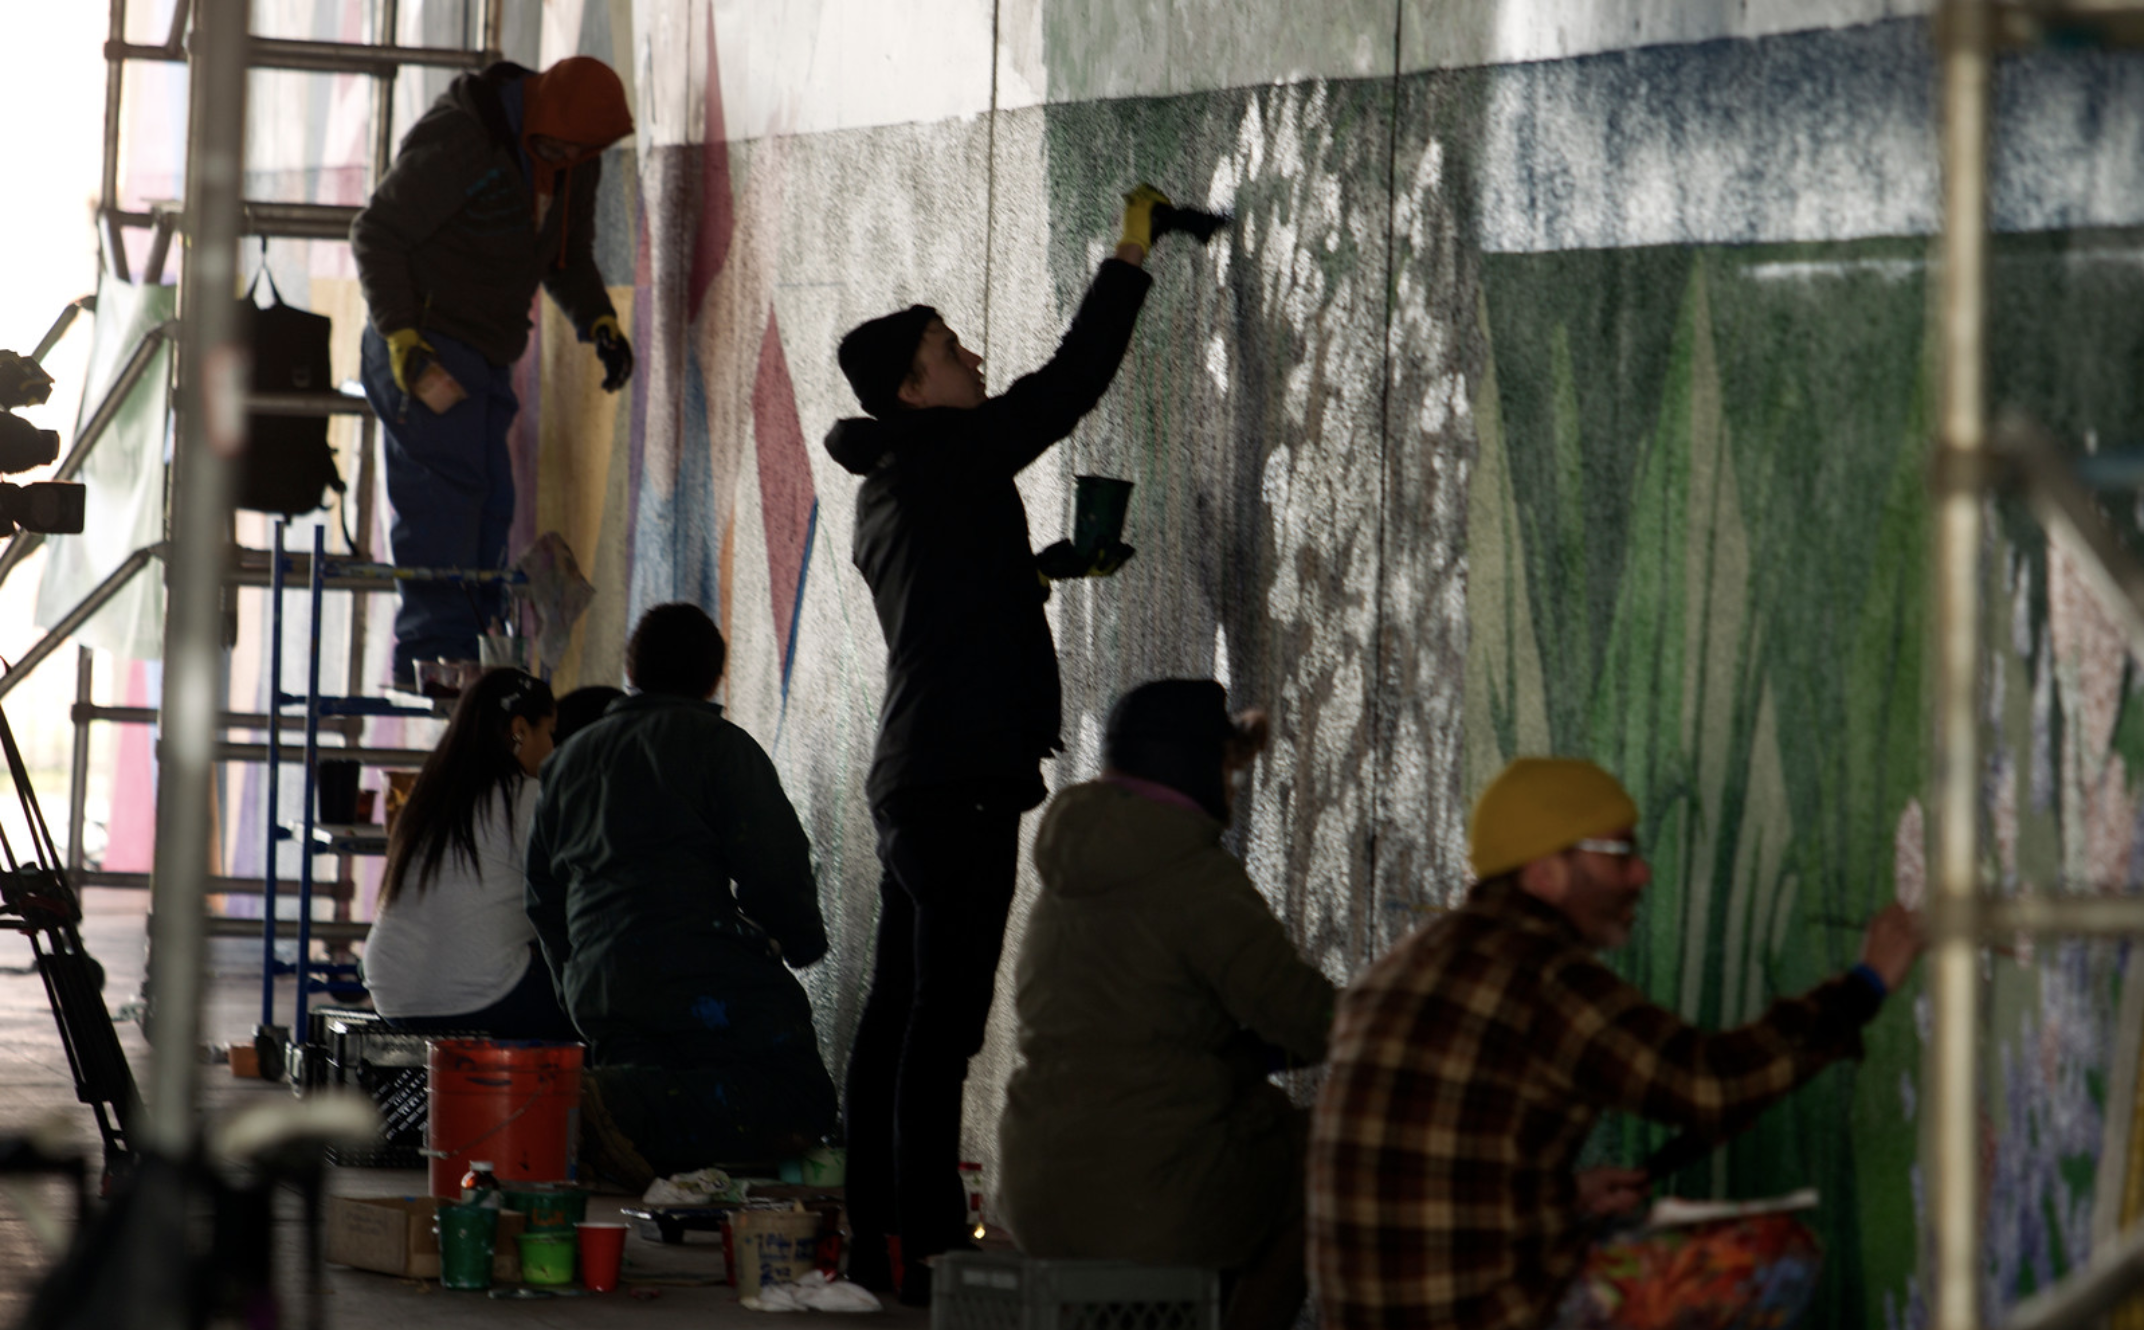 Mercury News - The Oakland Super Heroes Mural Project brings 12 local Oakland artists together to render the mural designed by lead artist Refa One. The mural is based on a story of four super heroes imagined by students at Westlake Middle School as part of the ArtEsteem